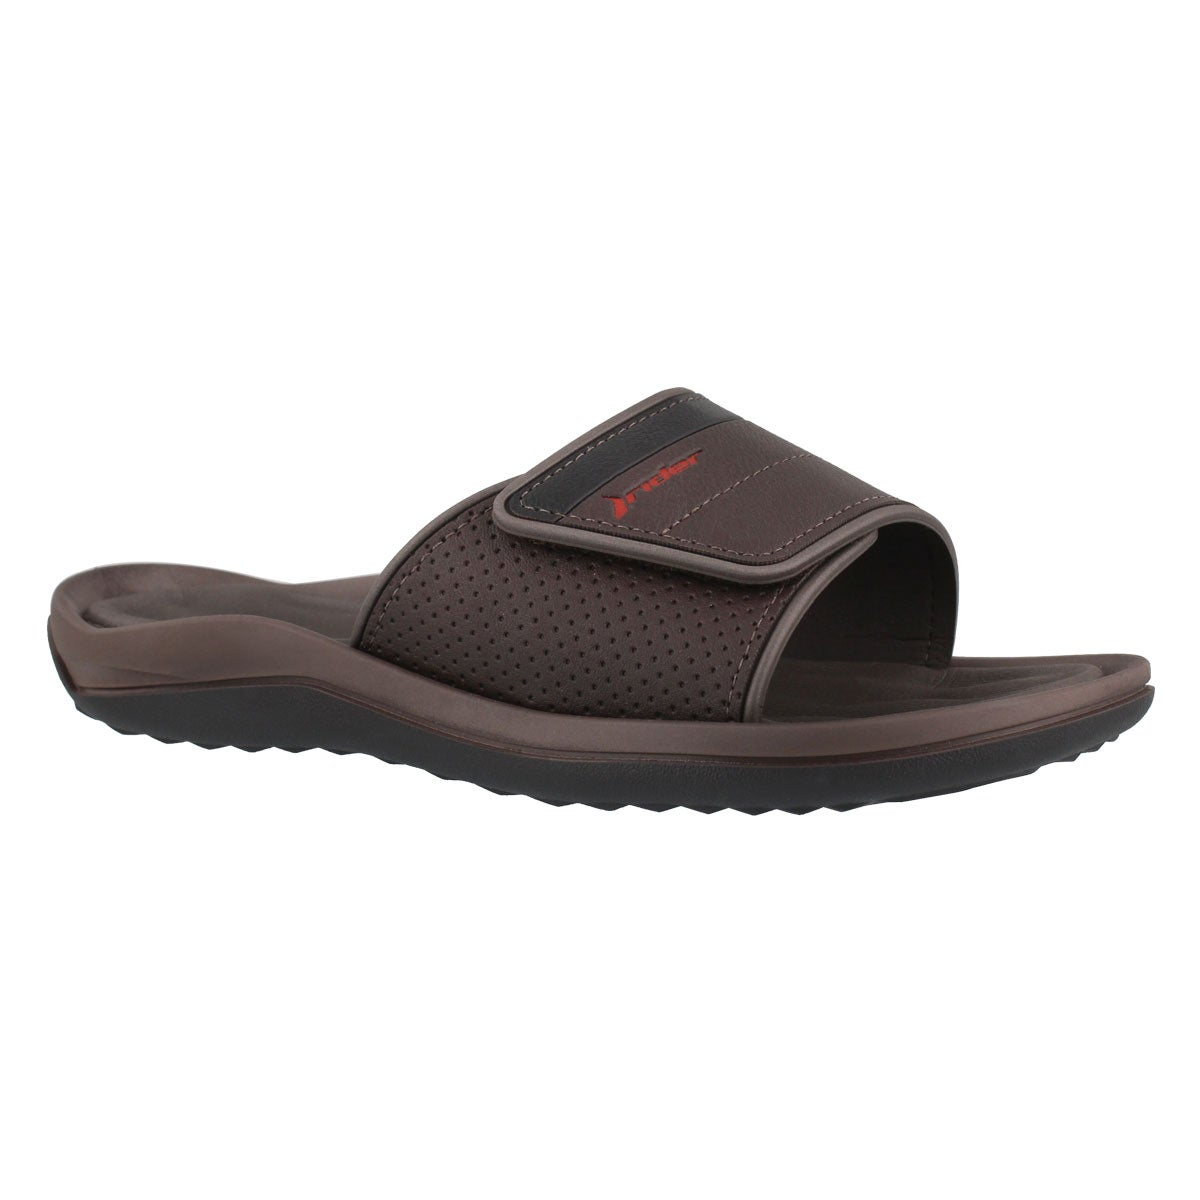 Mns Evolution Slide II brn/blk sandal